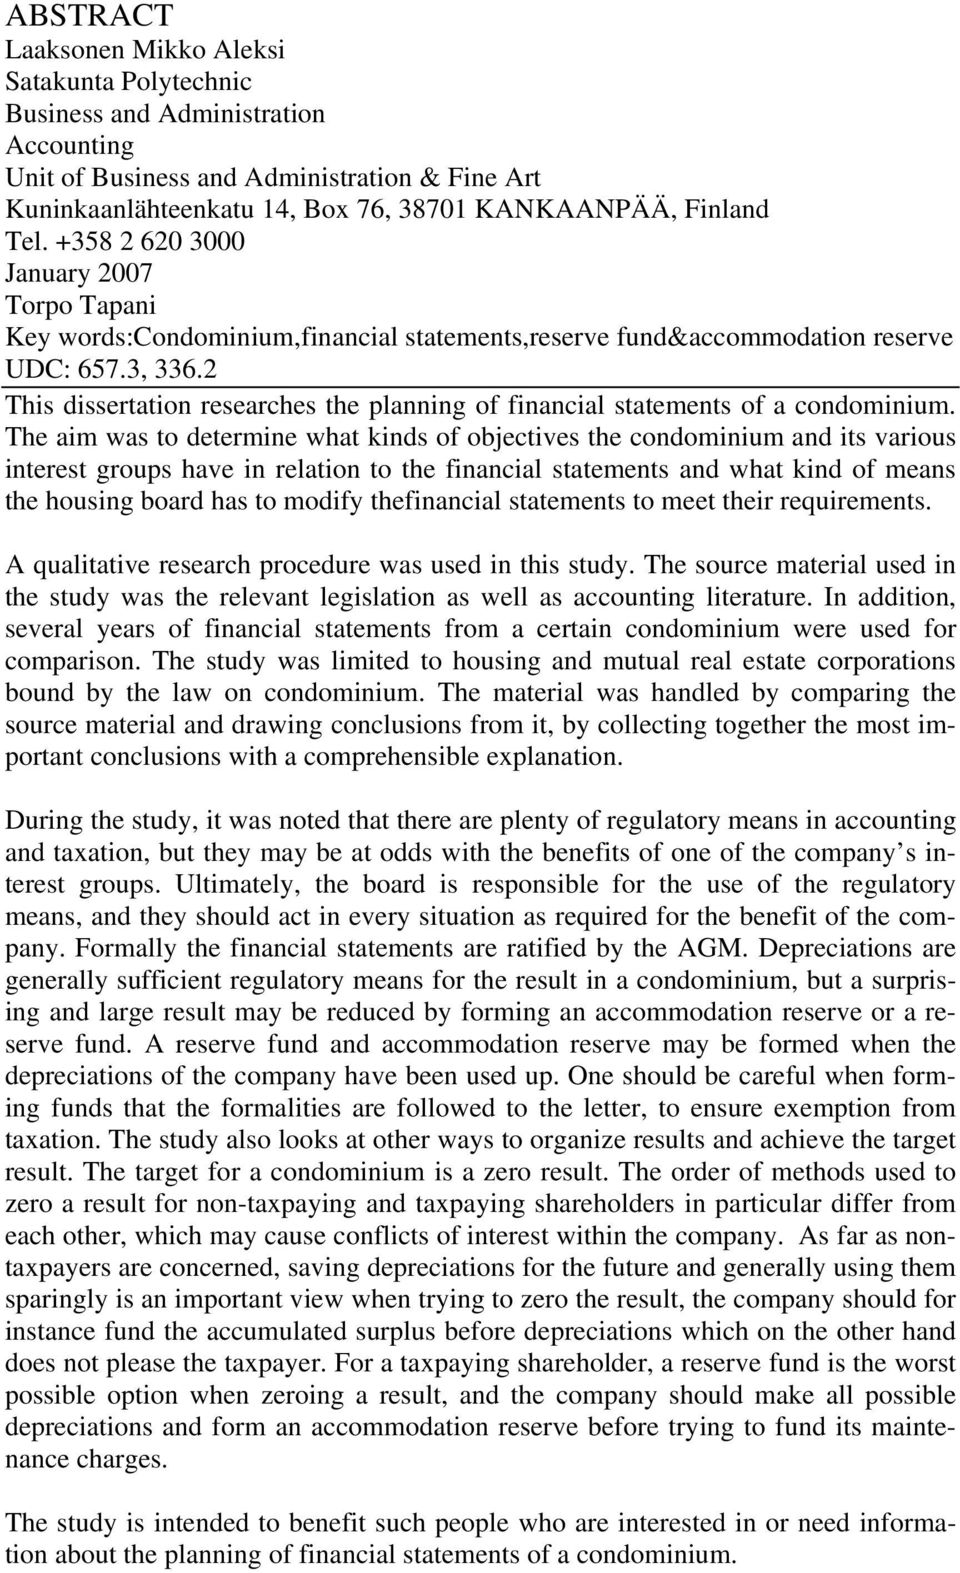 2 This dissertation researches the planning of financial statements of a condominium.